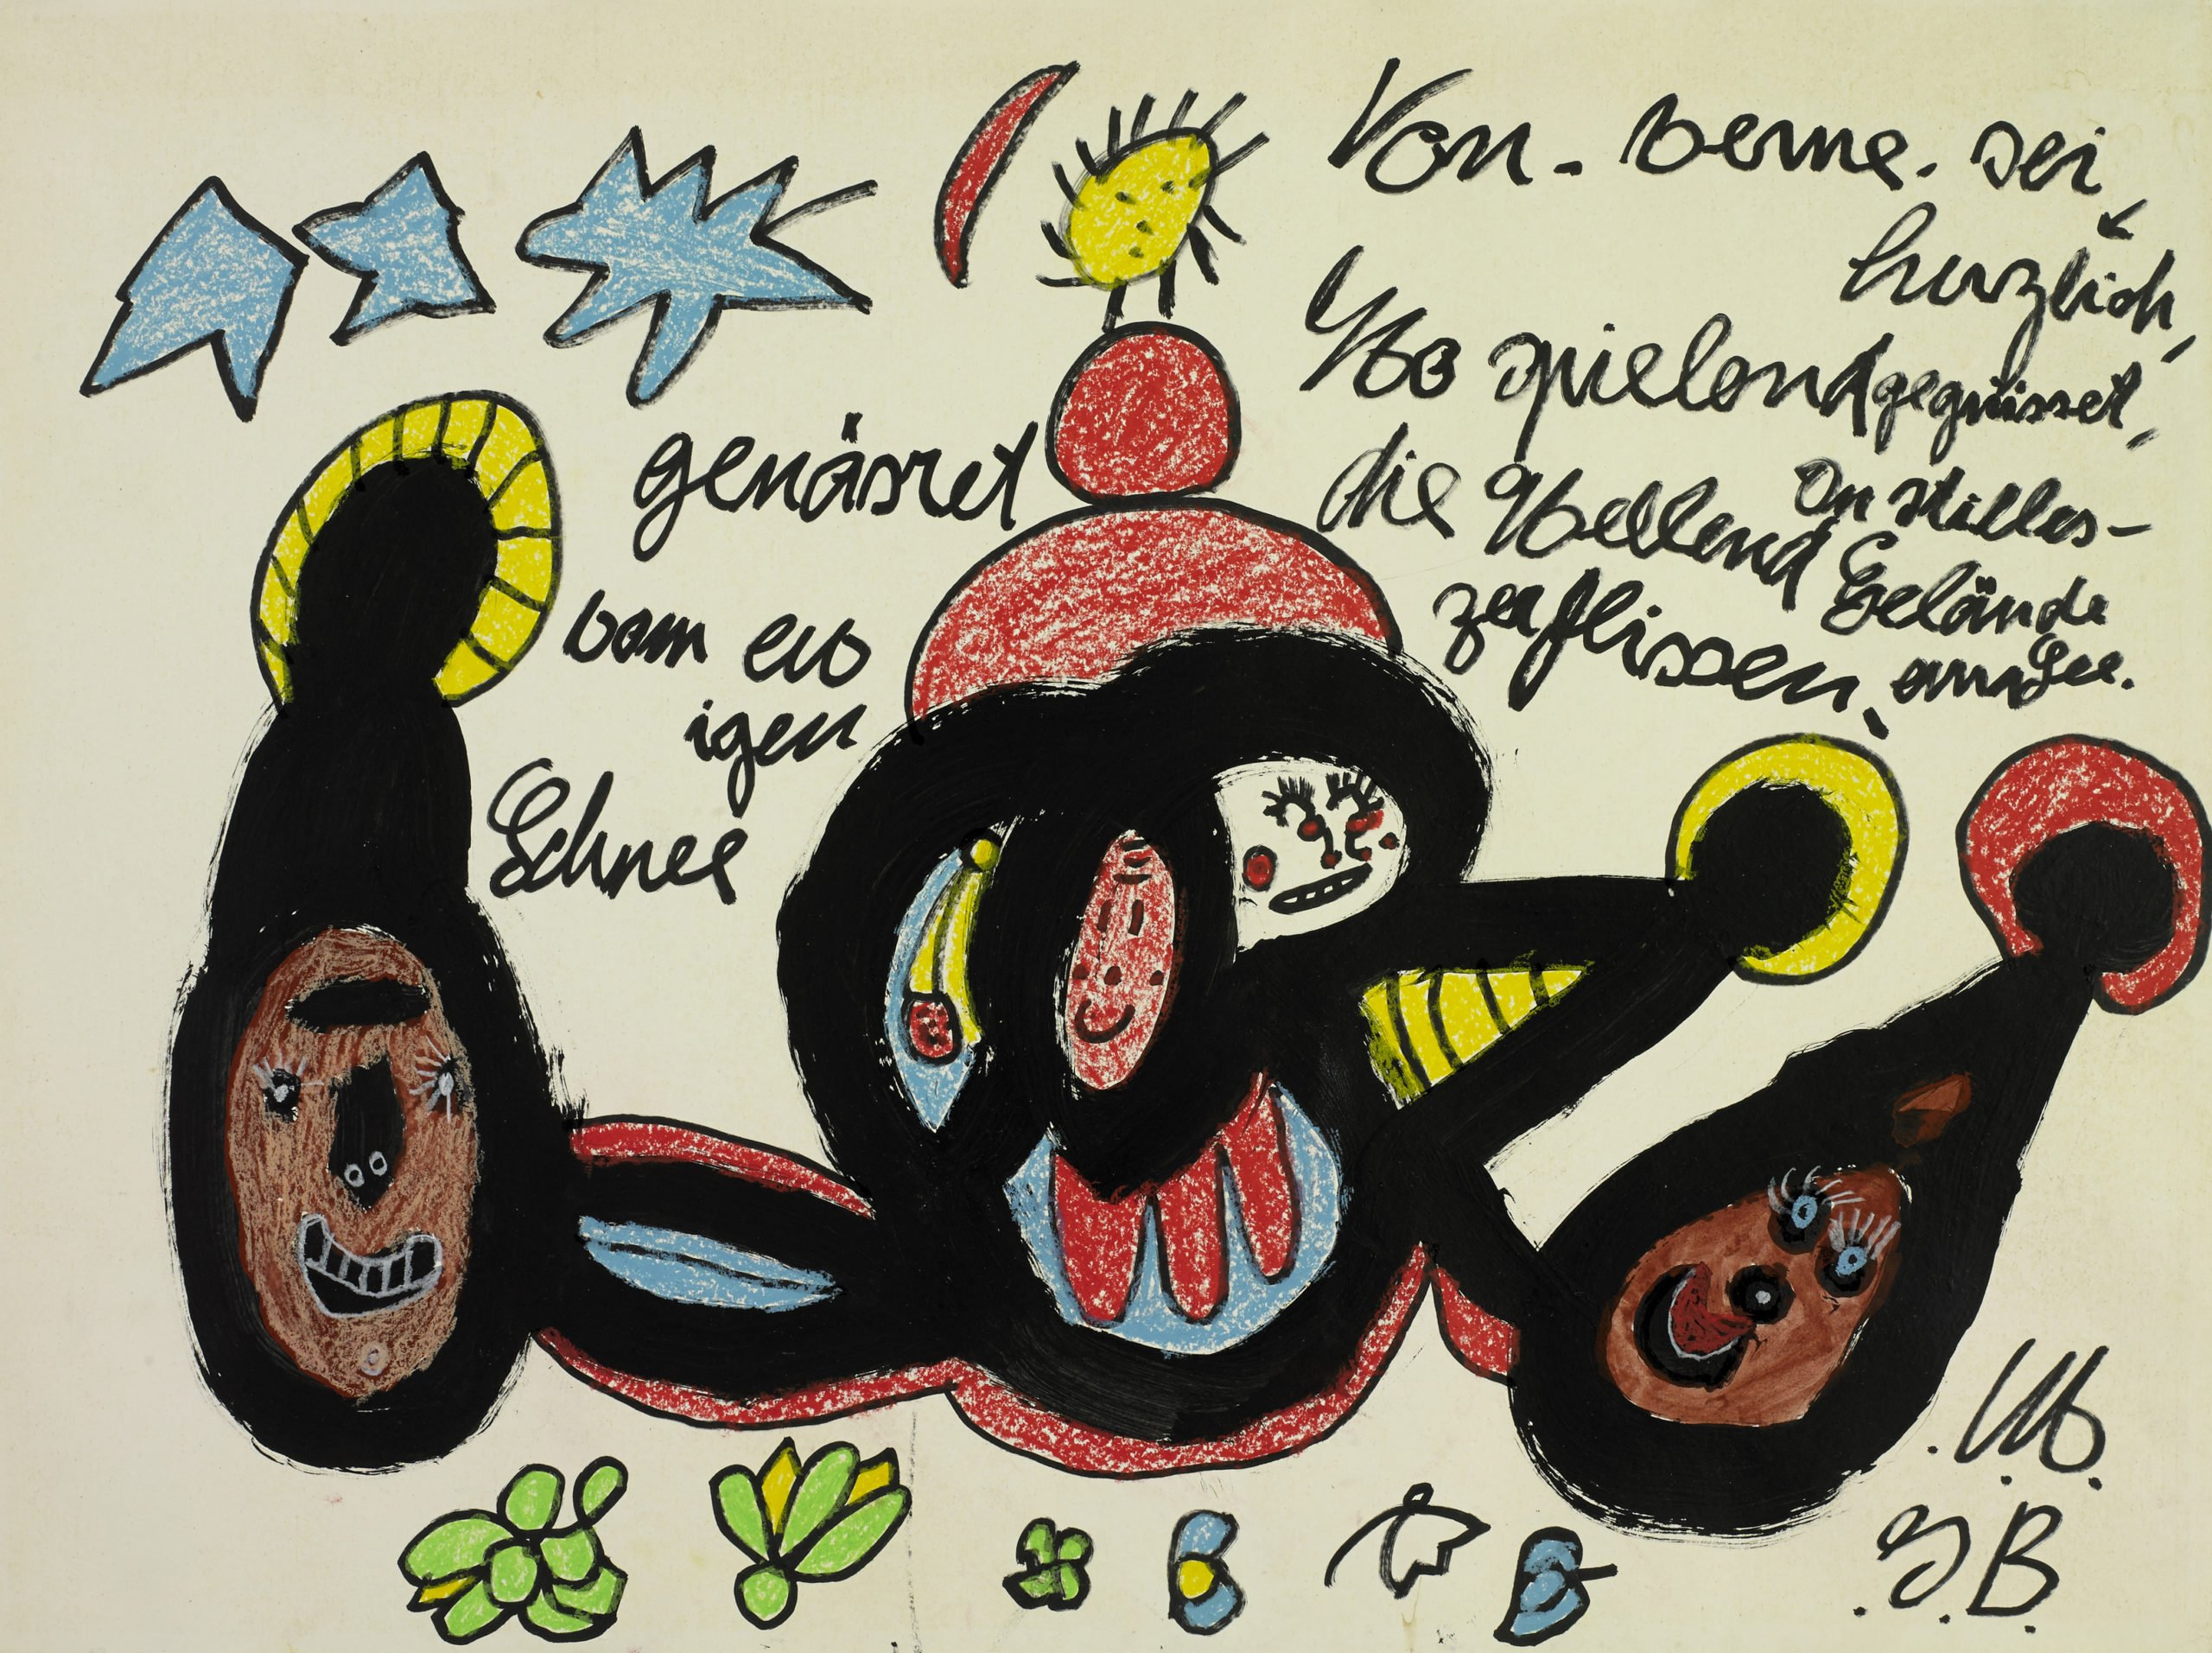 galerie gugging - Ida Buchmann, From. Berne. be greeted warmly, undated, acrylique, stylo Edding, craies grasses, acrylic, Sharpie marker, wax crayons, 66,1 x 90,2 cm, 8200€ - copie